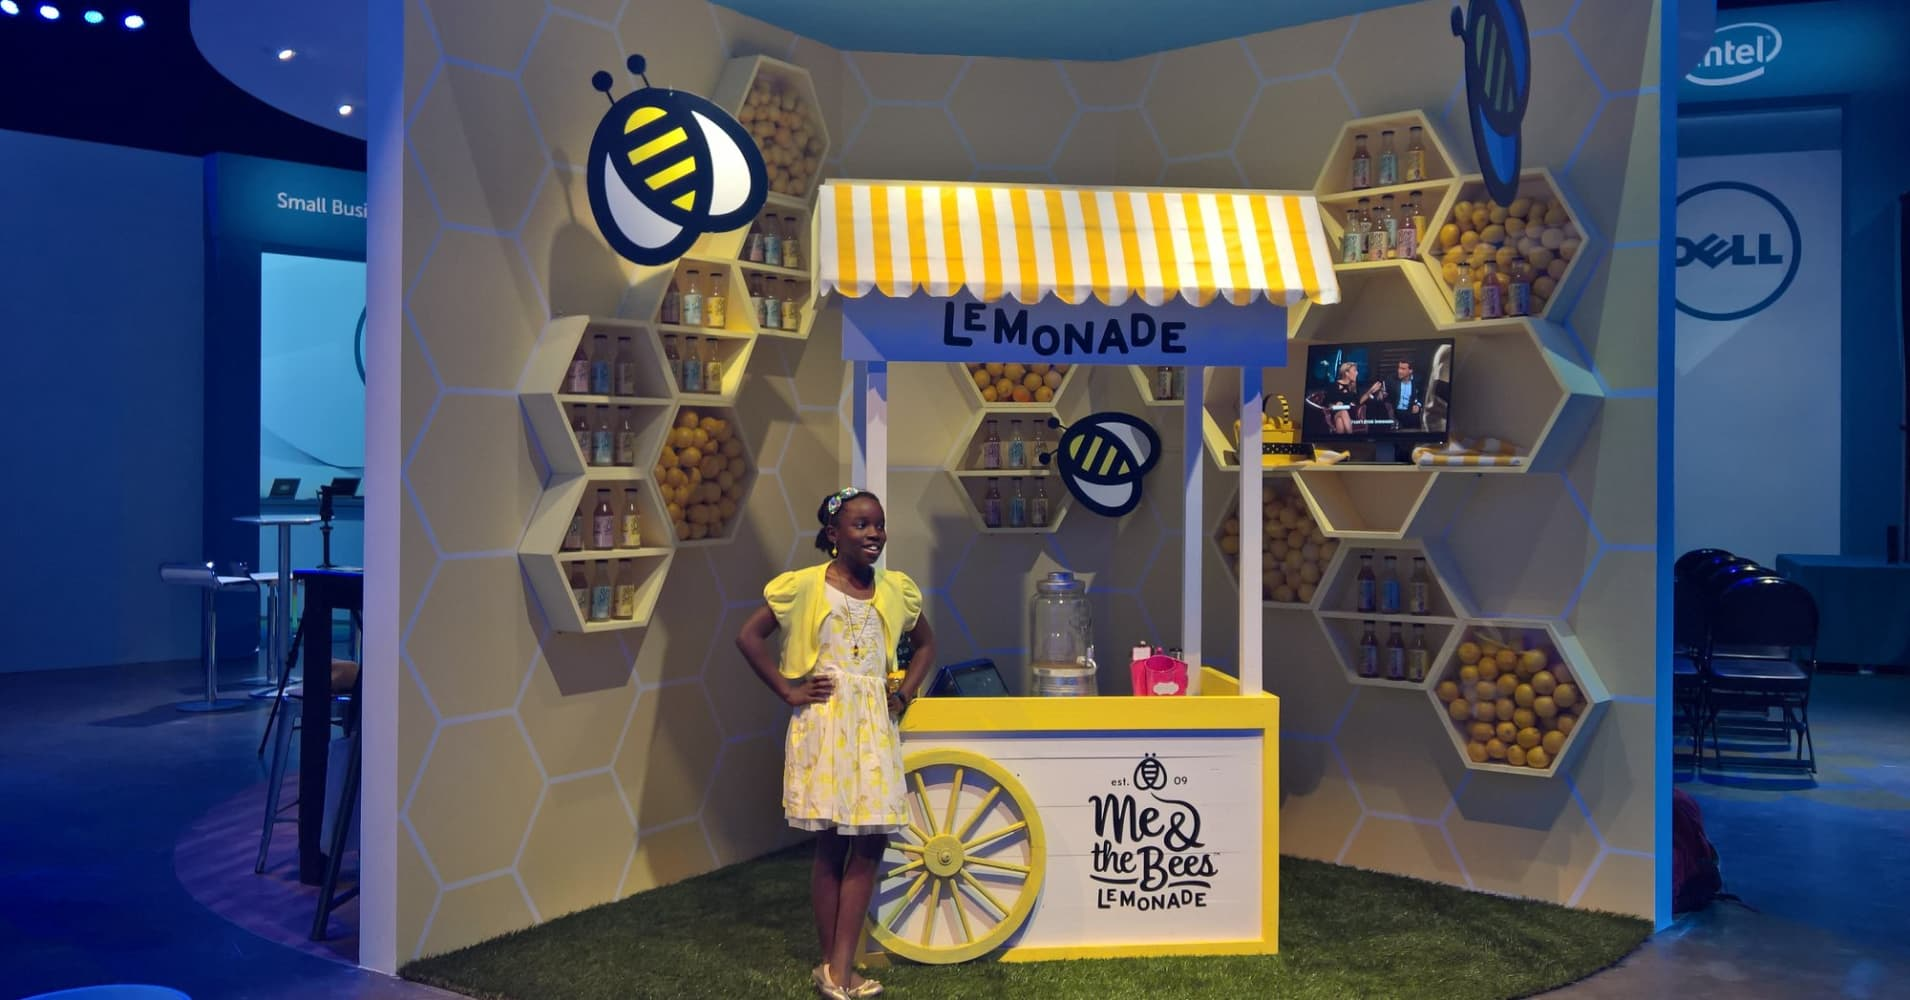 Mikaila Ulmer is the founder and CEO of Me & the Bees Lemonade